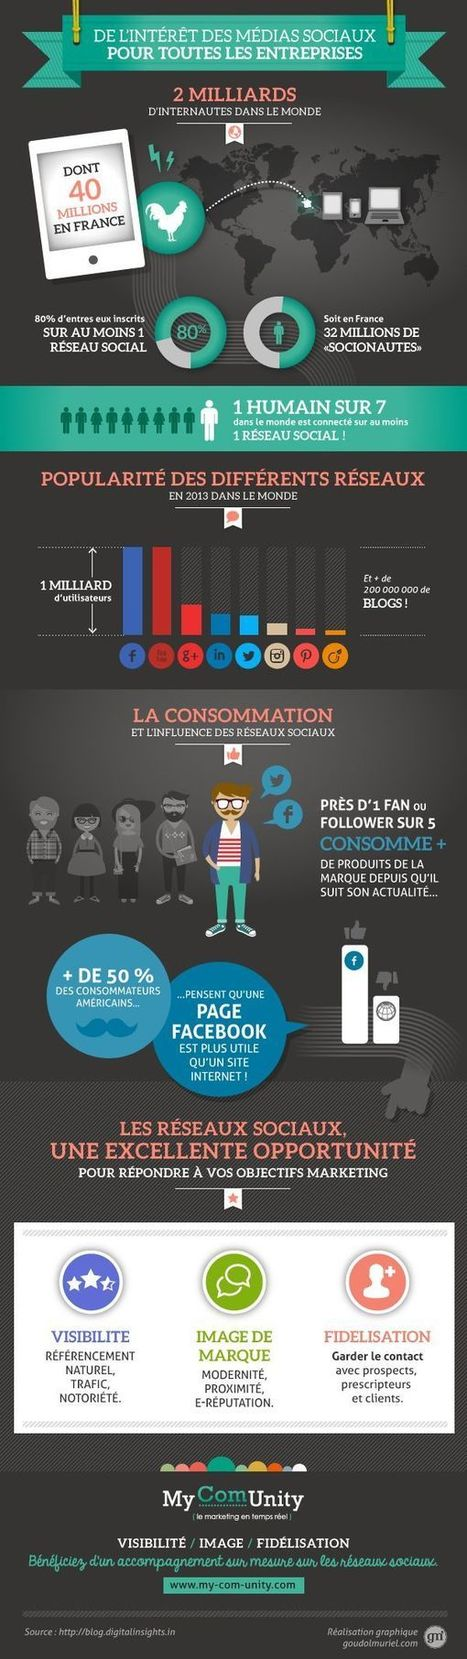 Communication / Marketing - Infos / stats | Réseaux sociaux | Scoop.it